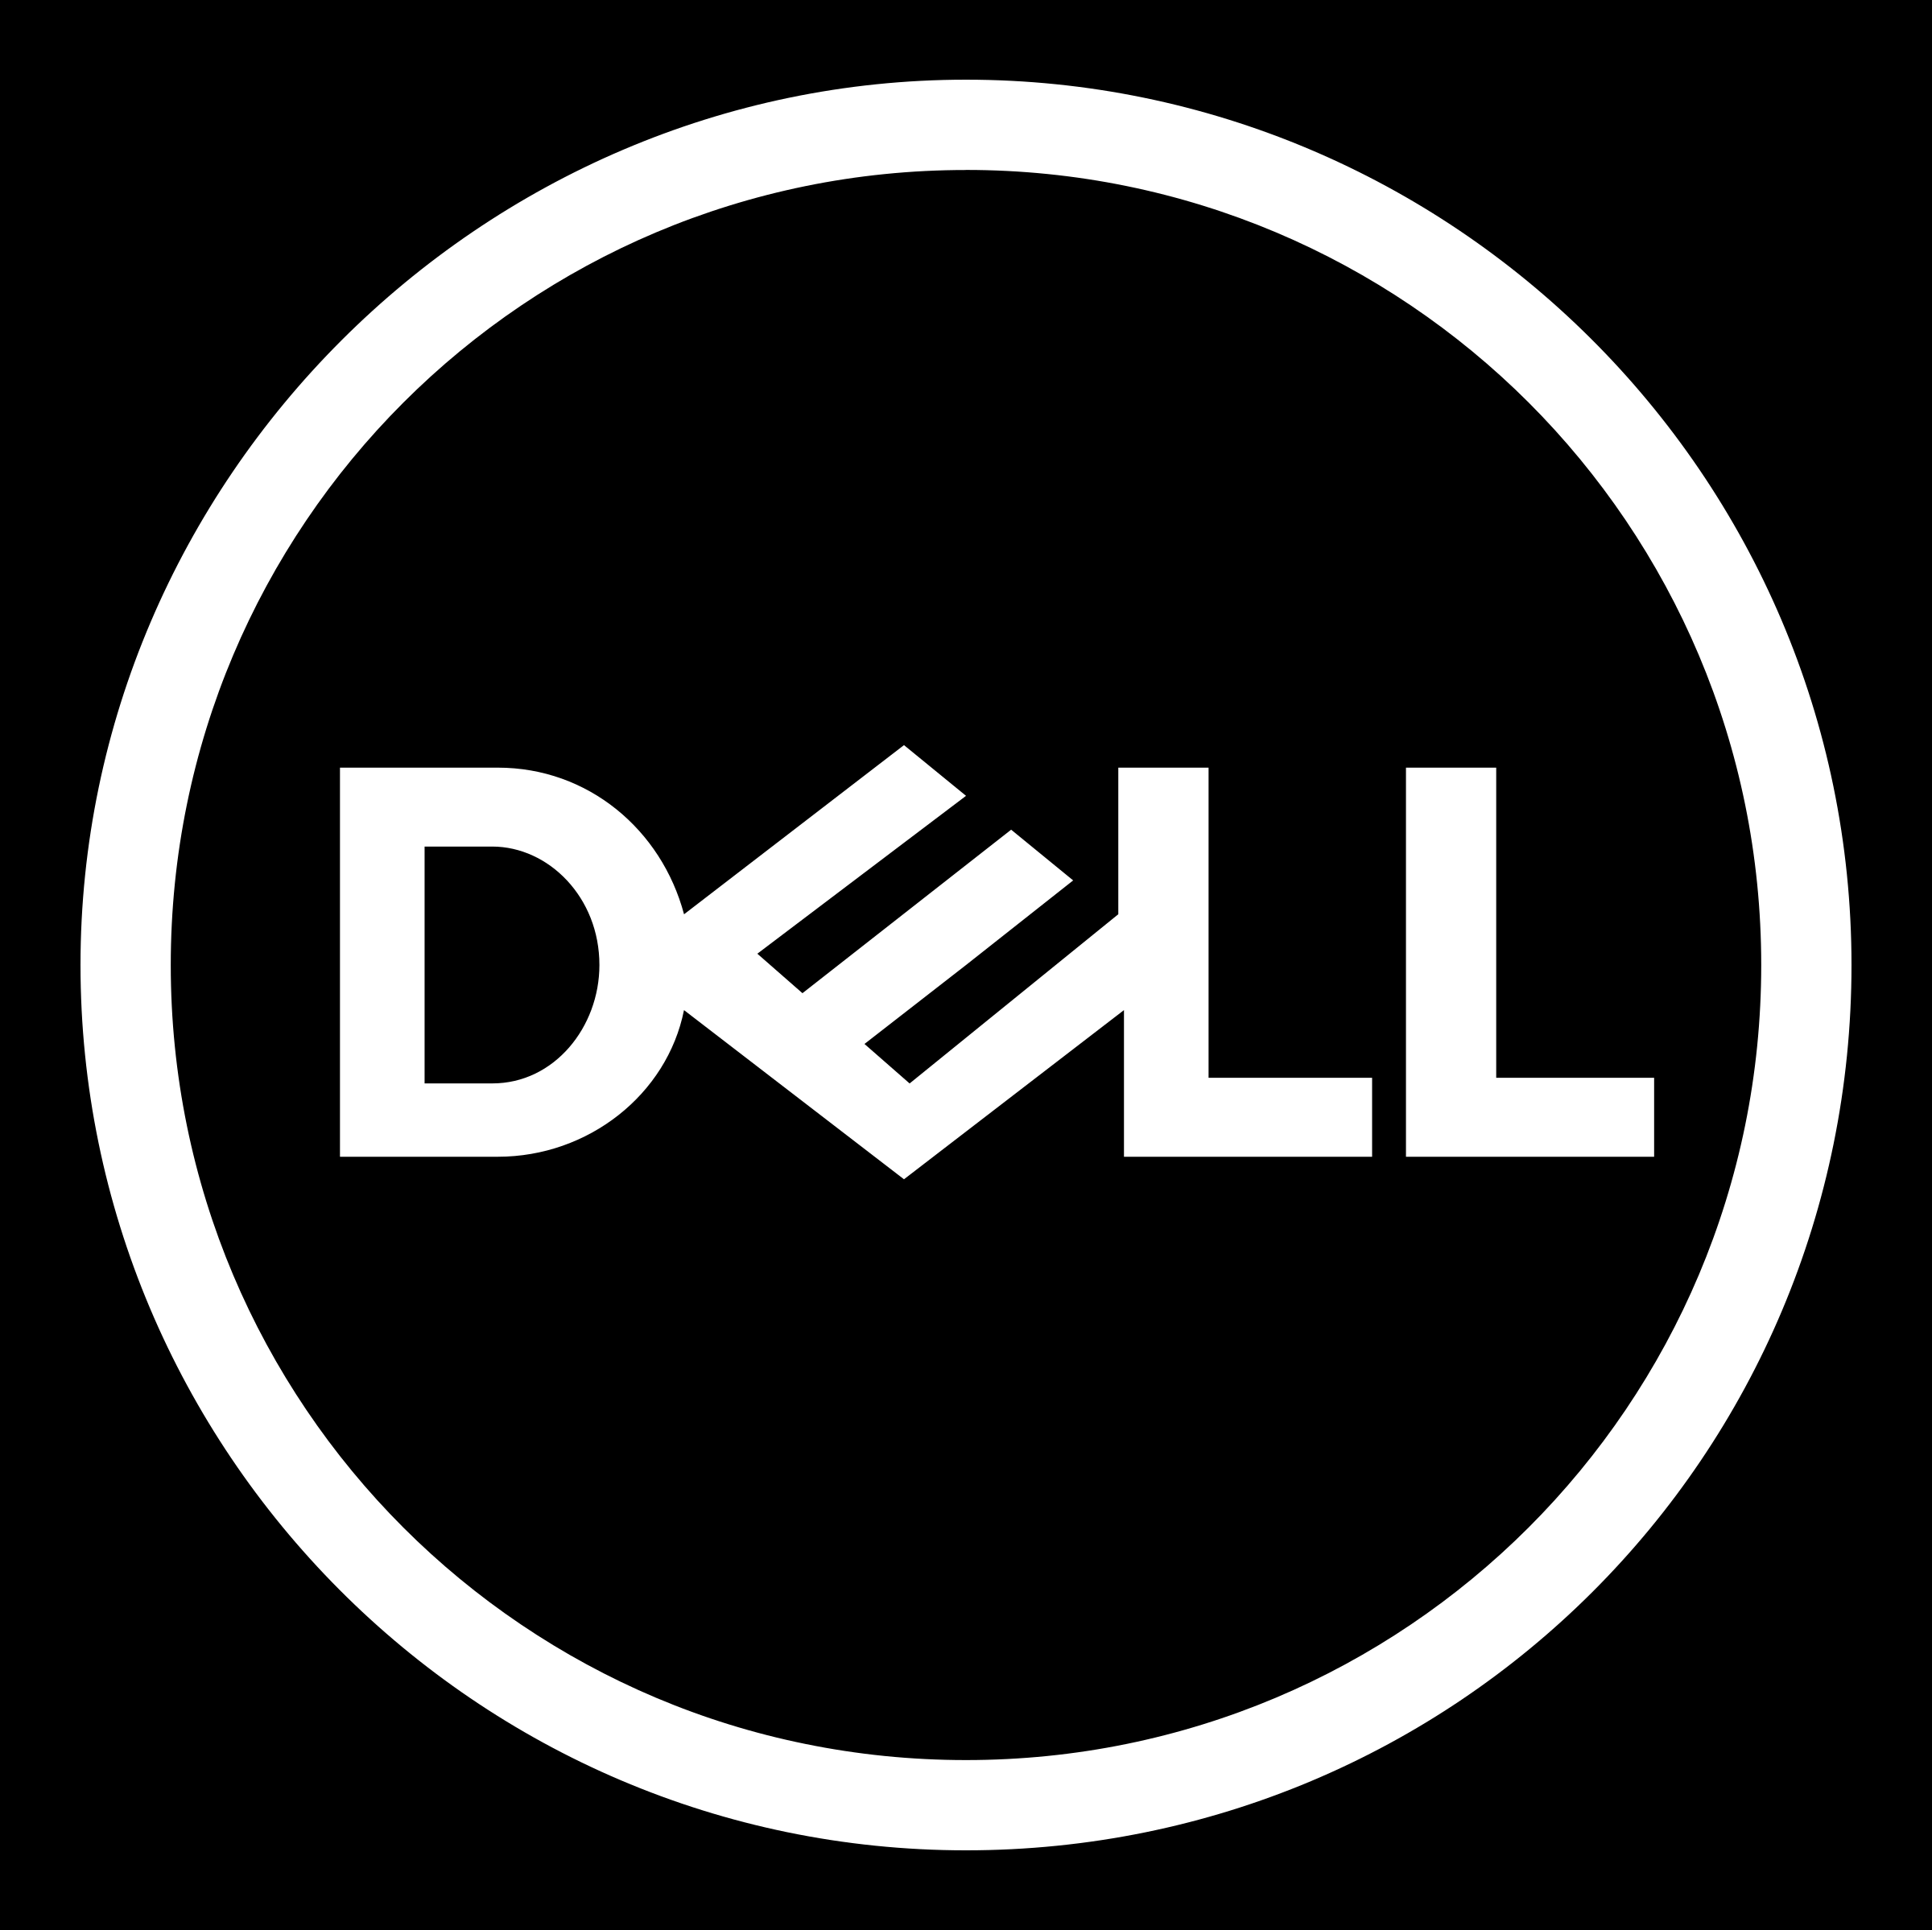 Dell Logo White - Dell Vector PNG